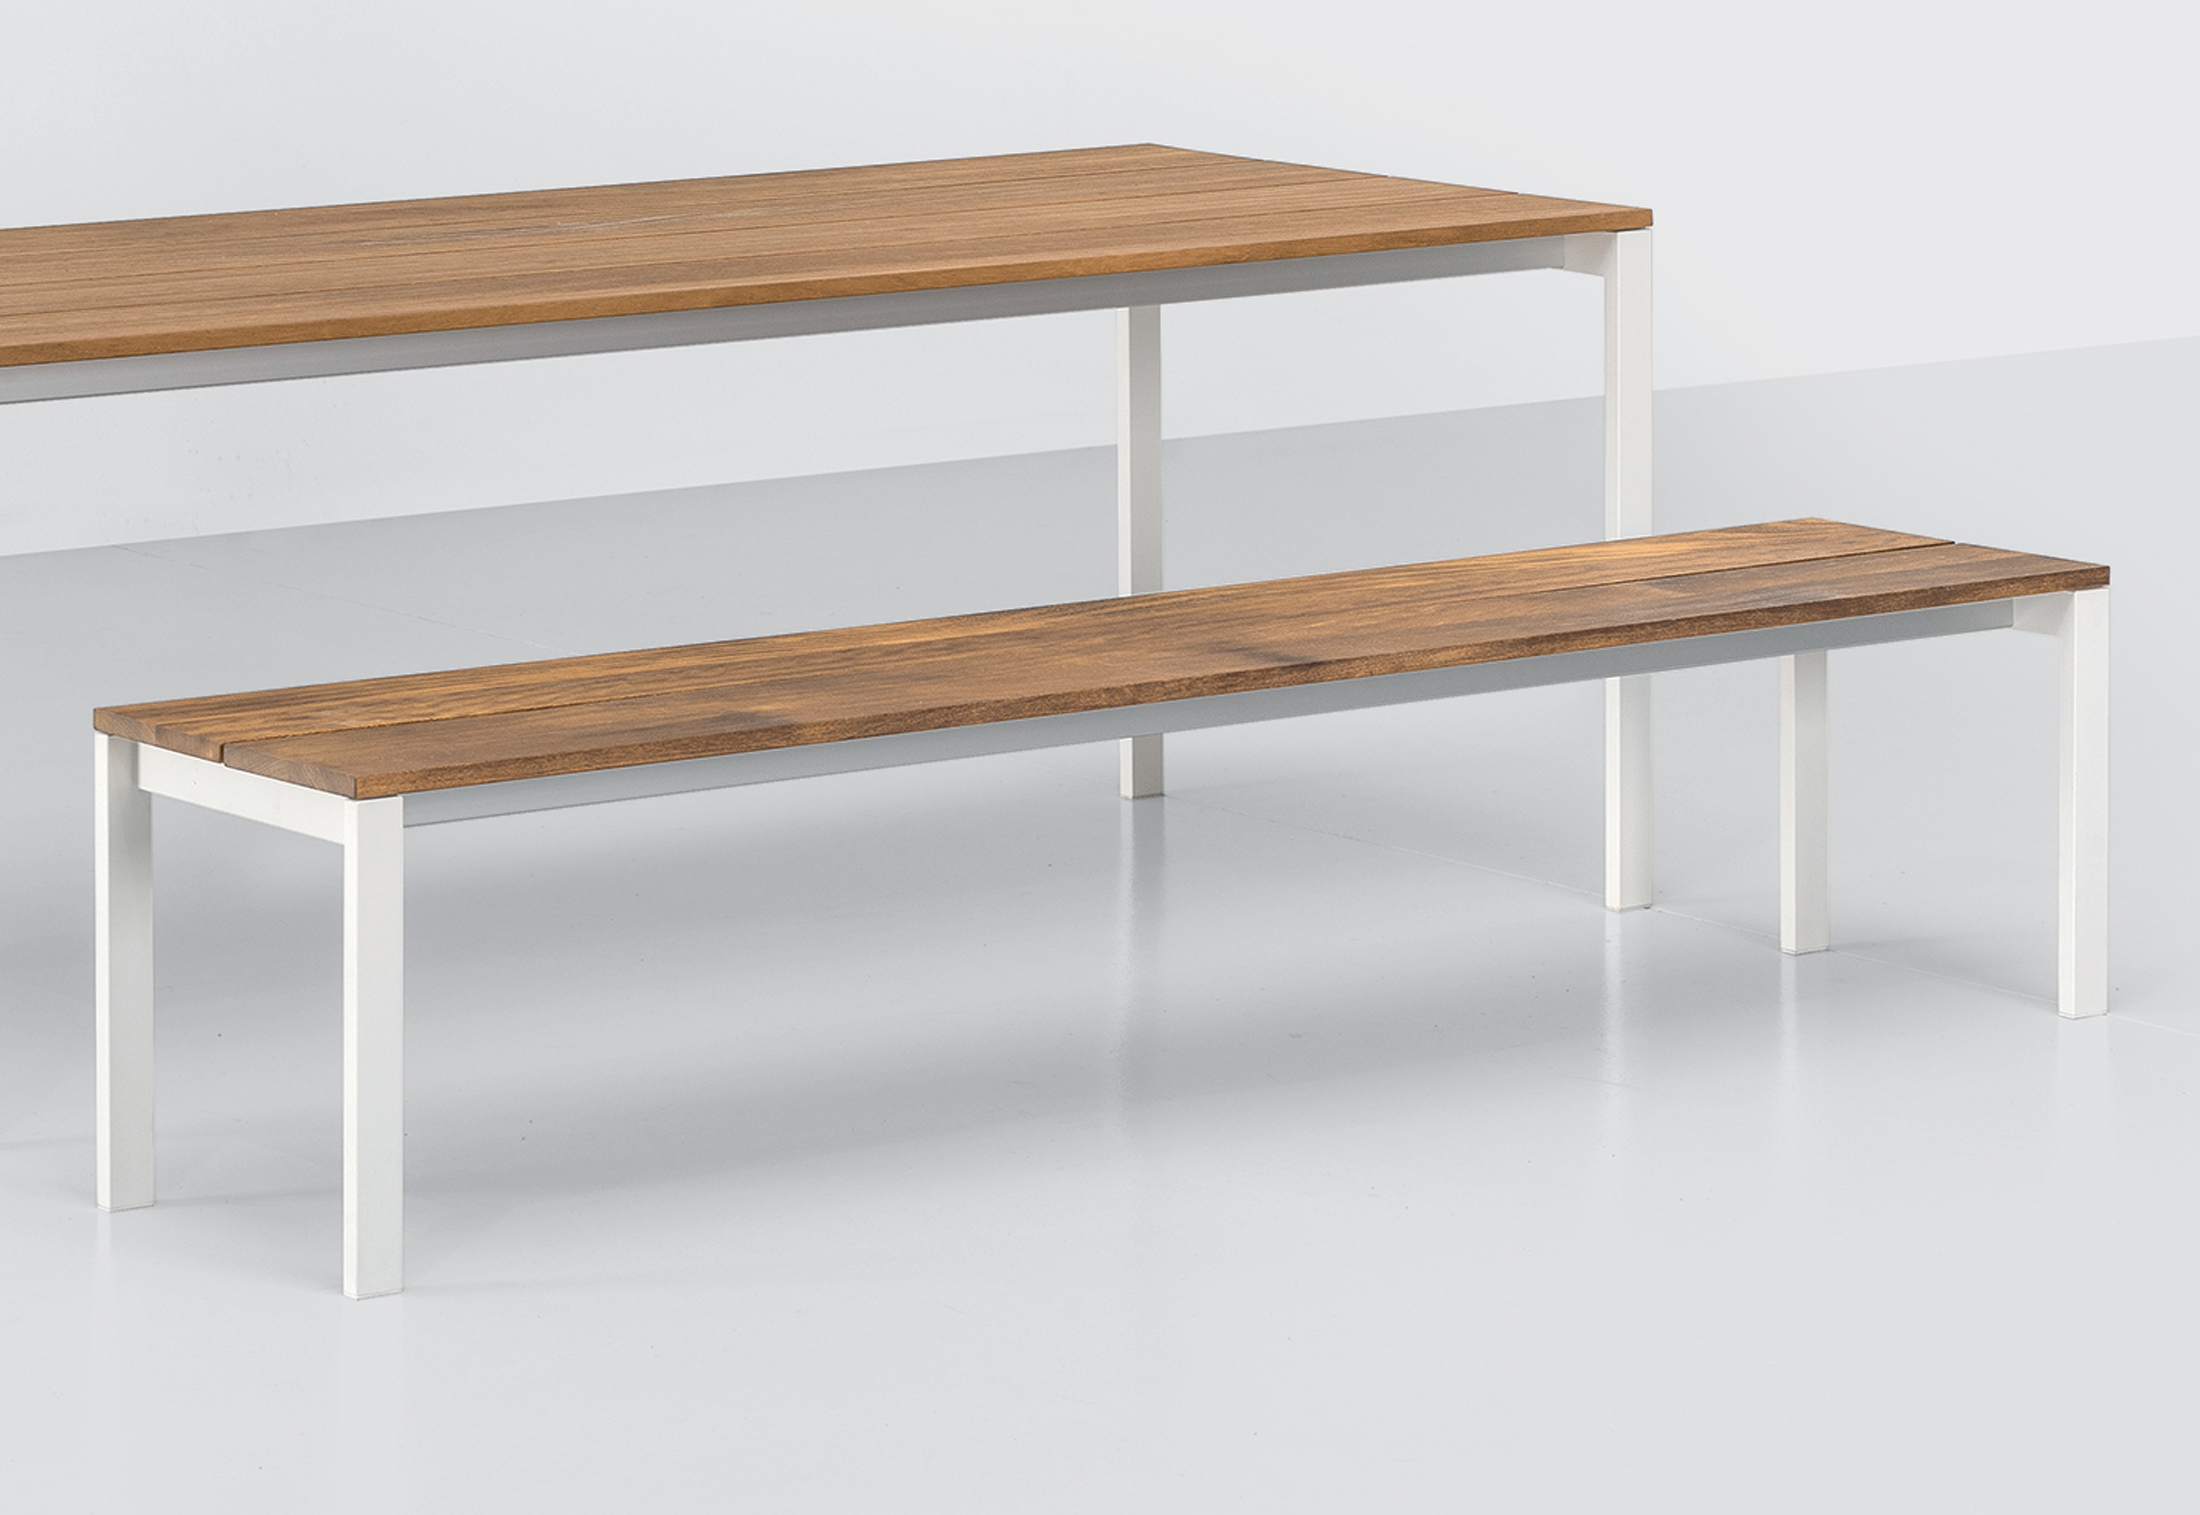 Swell Be Easy Slatted Bench By Kristalia Stylepark Ncnpc Chair Design For Home Ncnpcorg